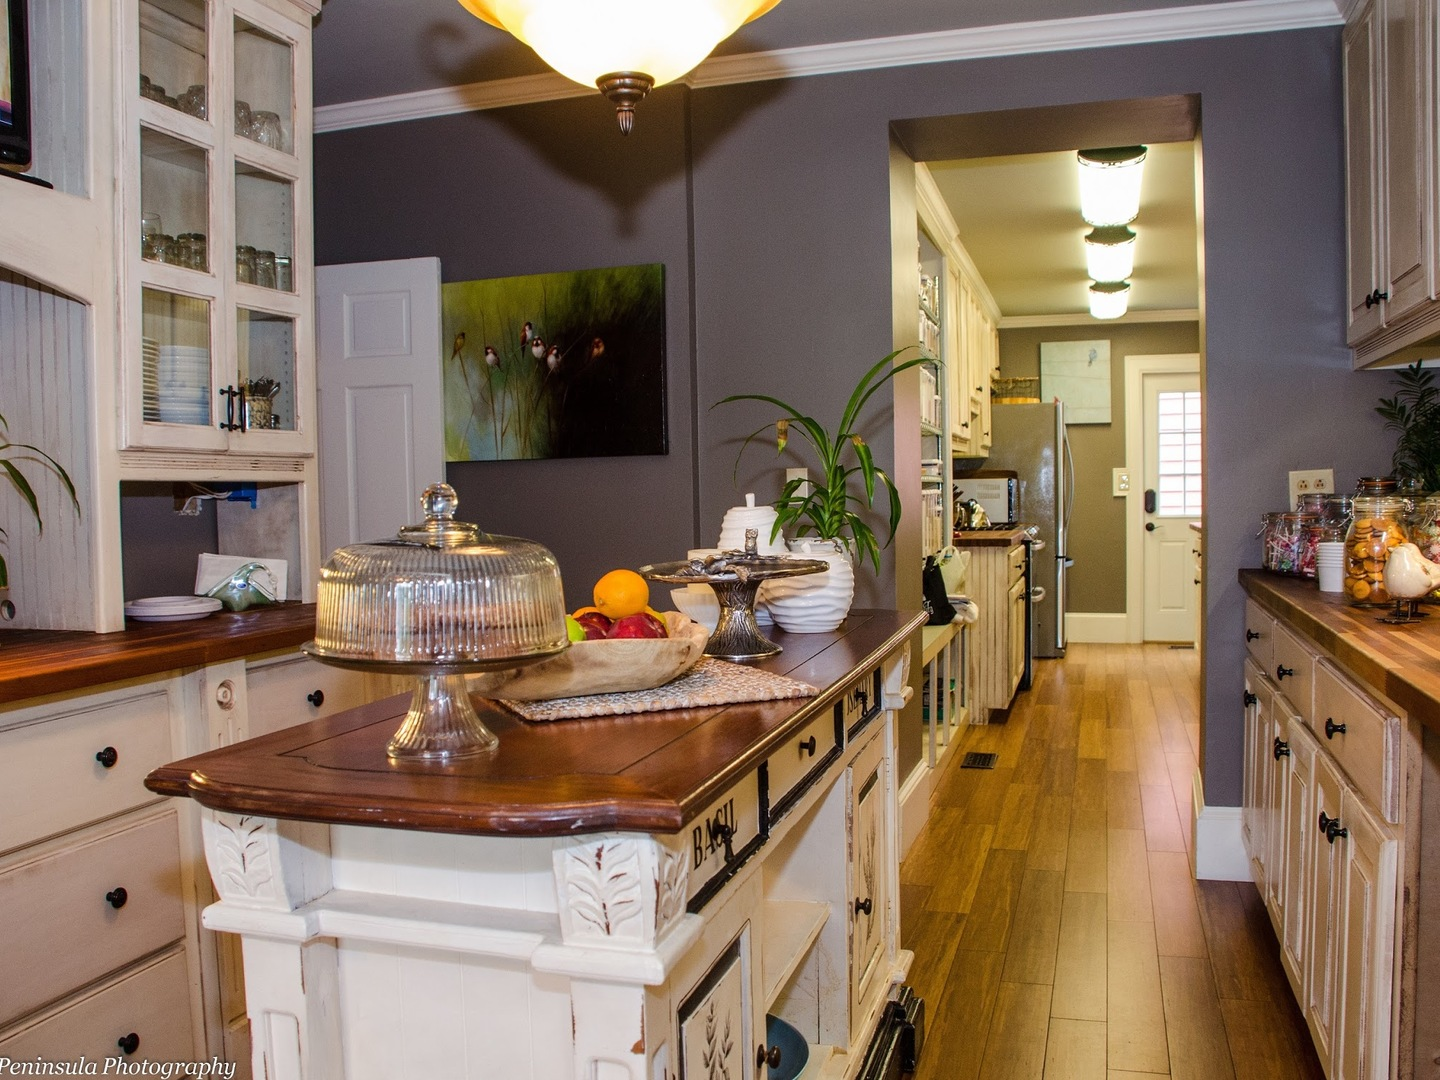 A kitchen filled with lots of counter space at Williamsburg Manor Bed & Breakfast.